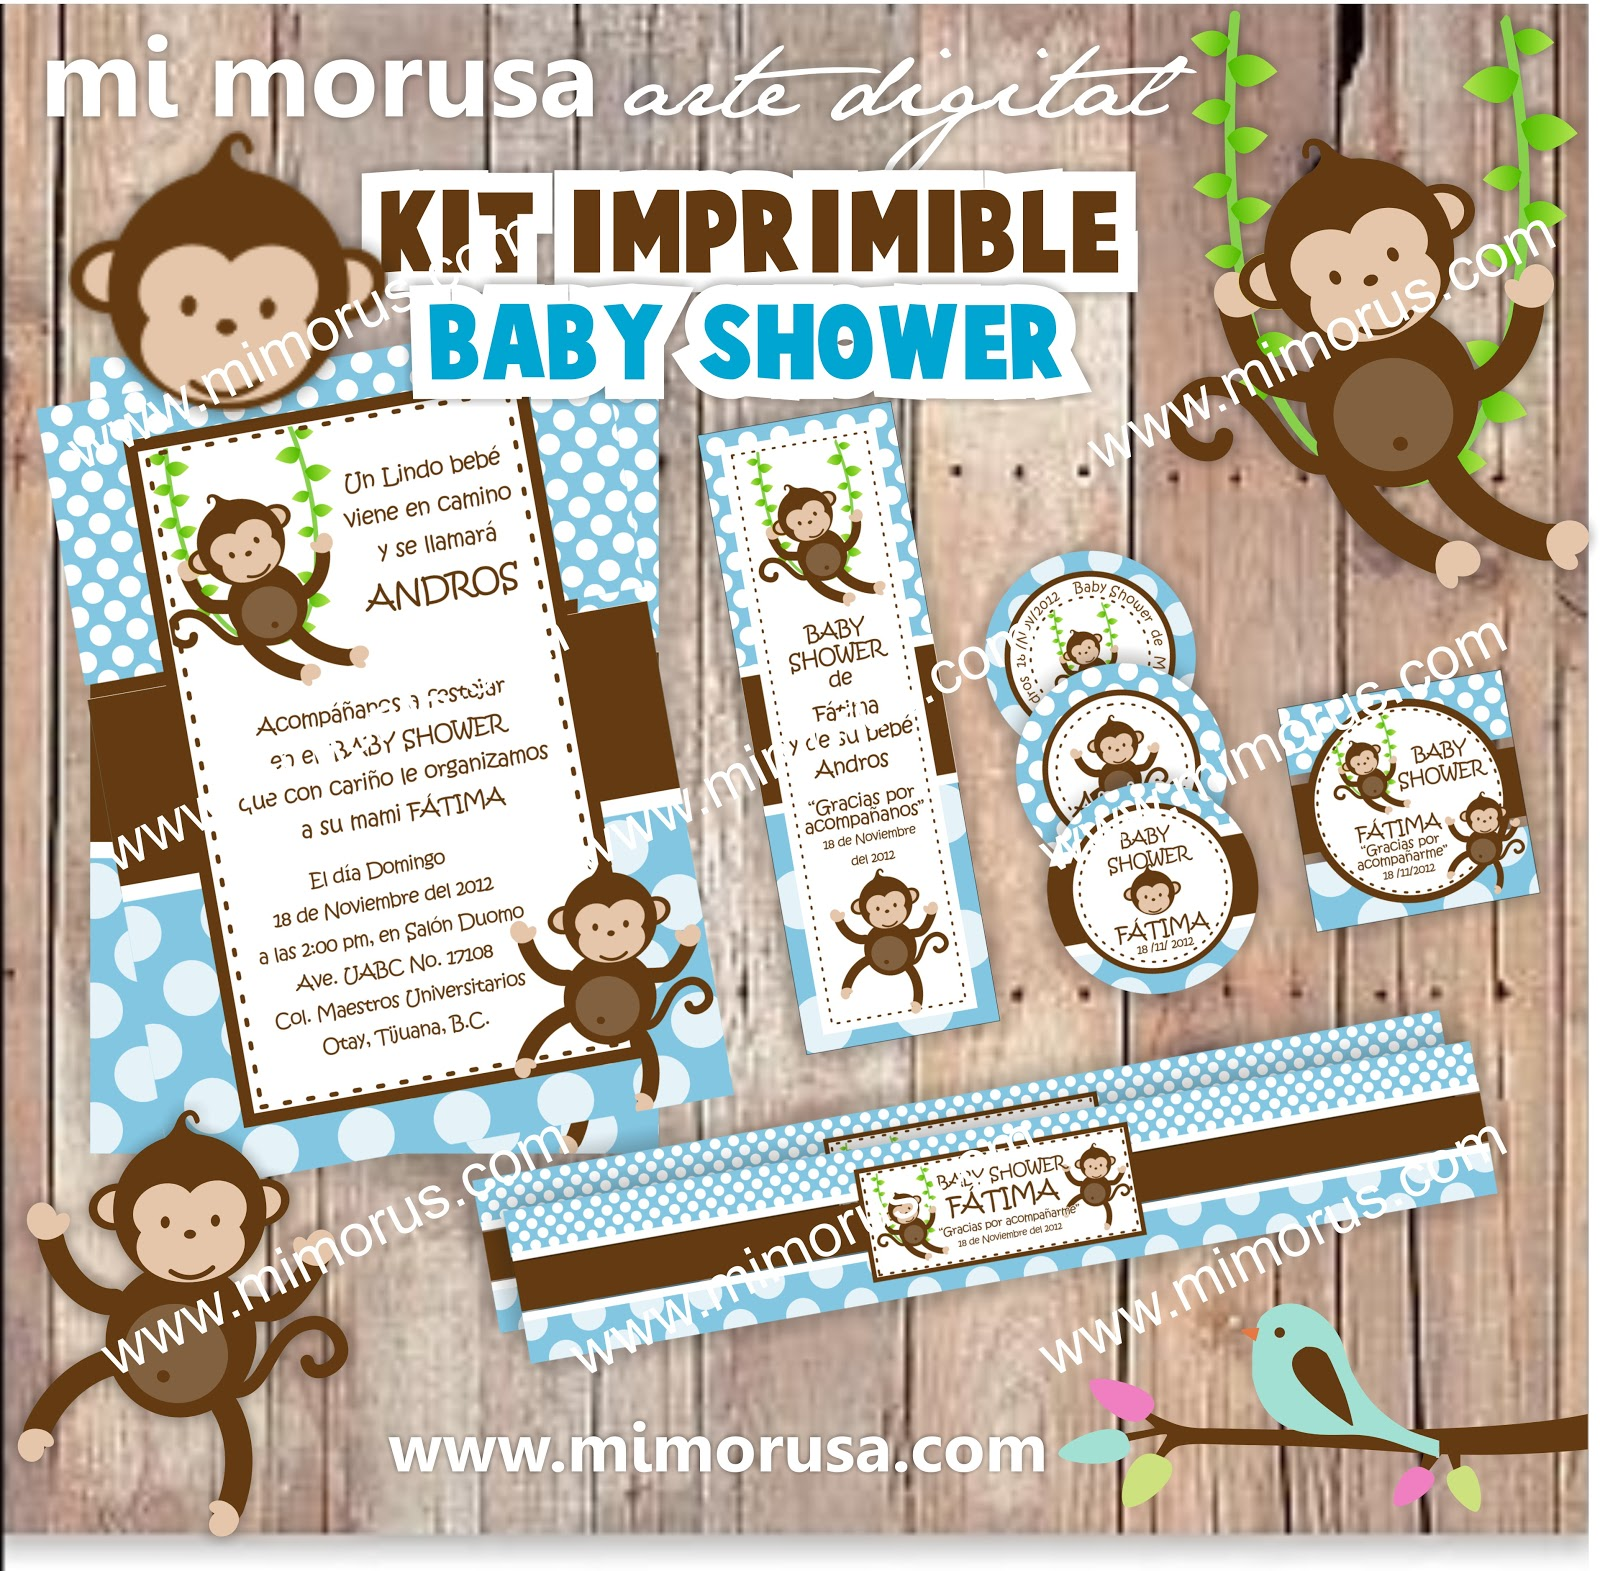 mi morusa arte digital kit imprimible baby shower changuitos. Black Bedroom Furniture Sets. Home Design Ideas